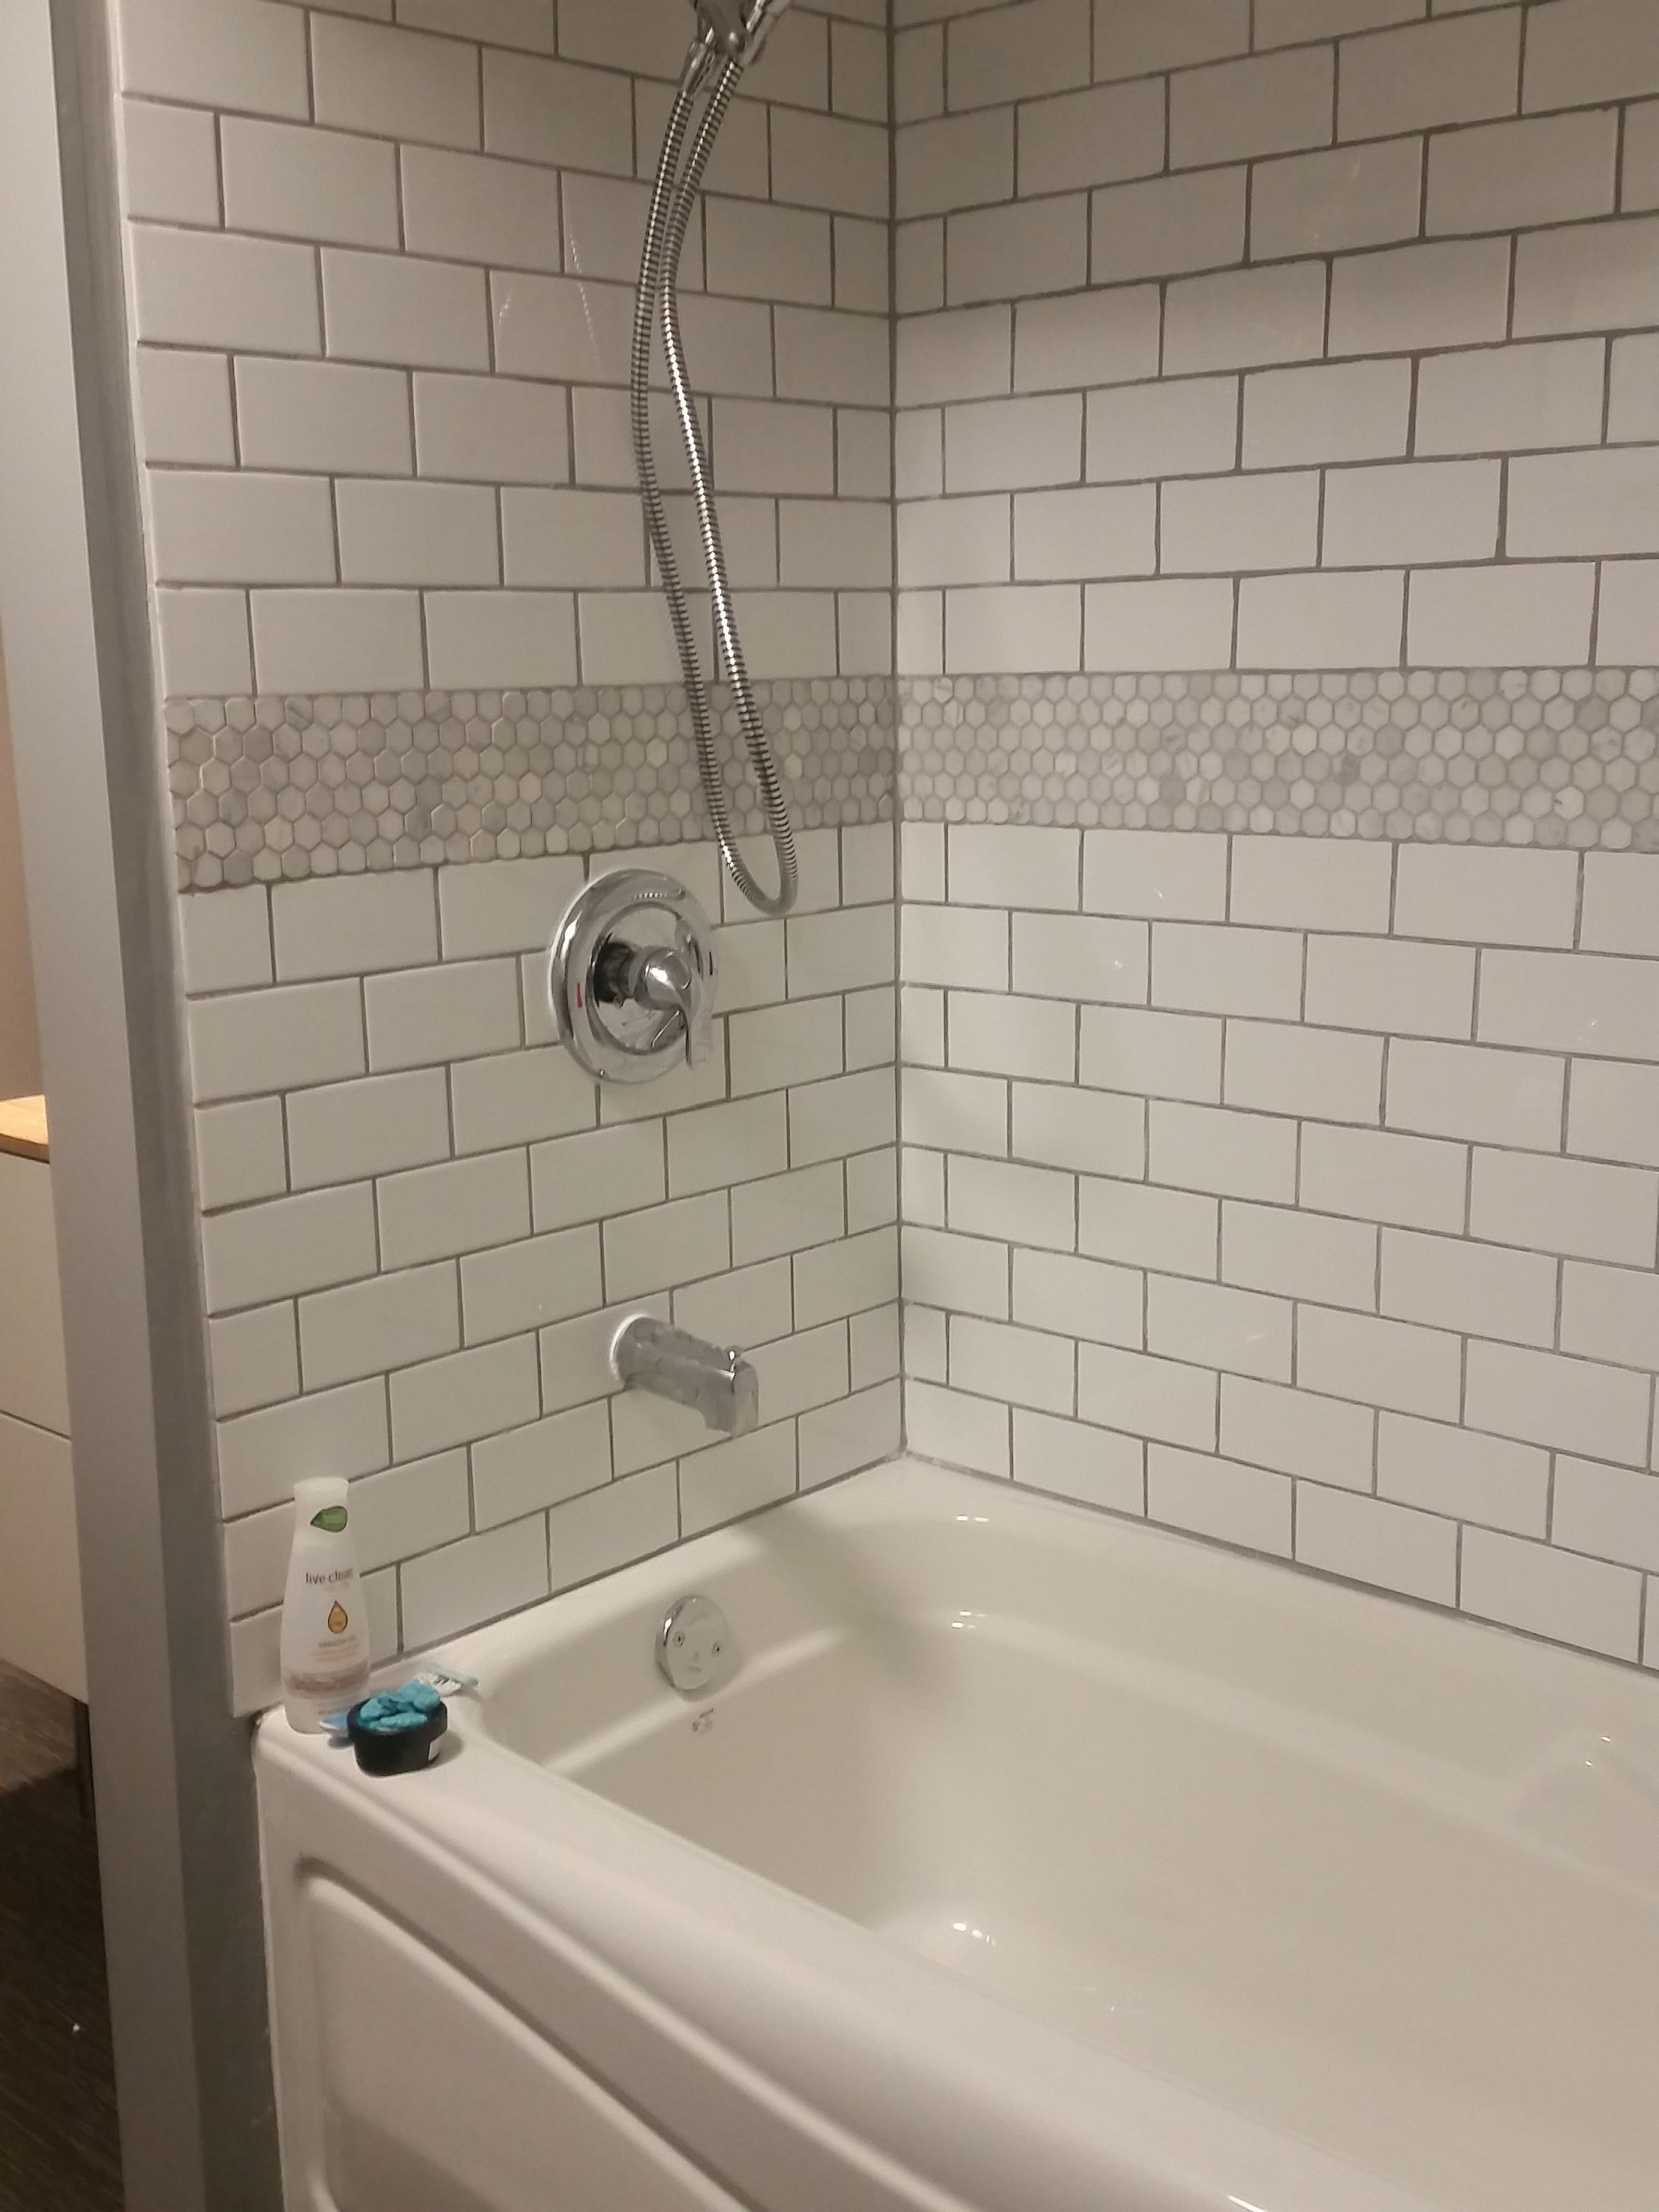 Bathtub Surround Tile Tub